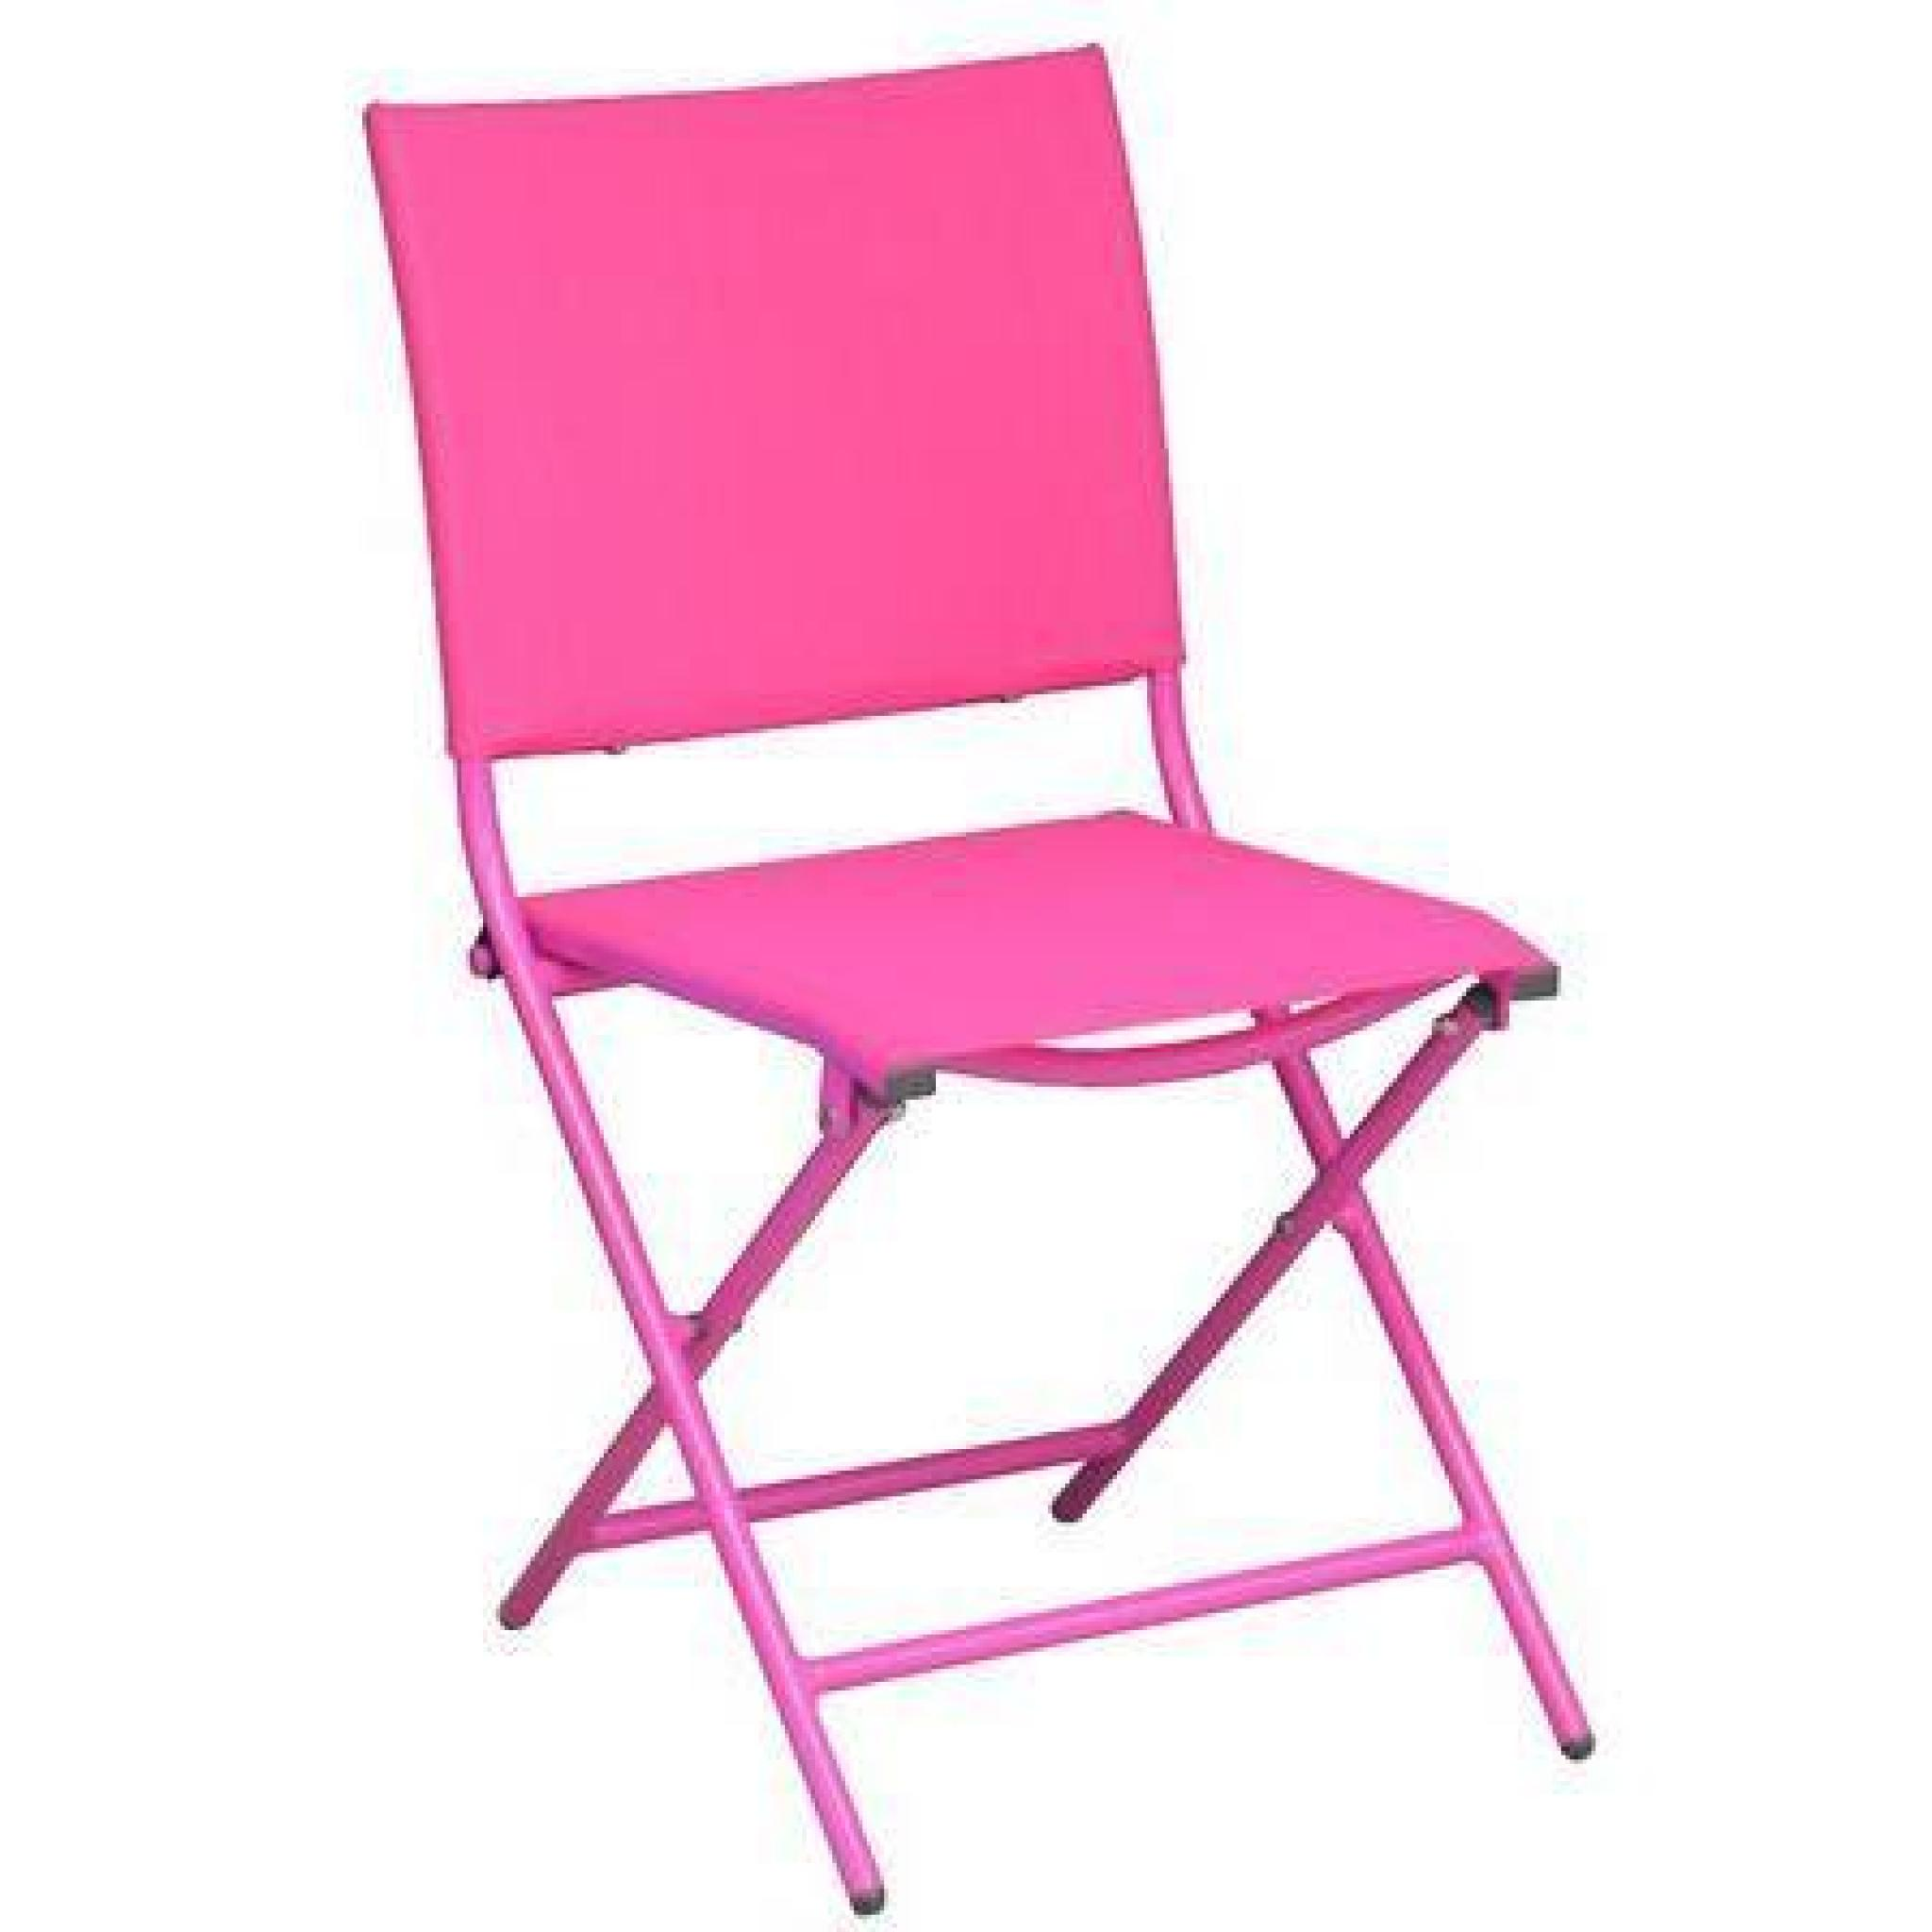 Salon cara bes 1 table 6 chaises pliantes framboise - Table chaise pas cher ...